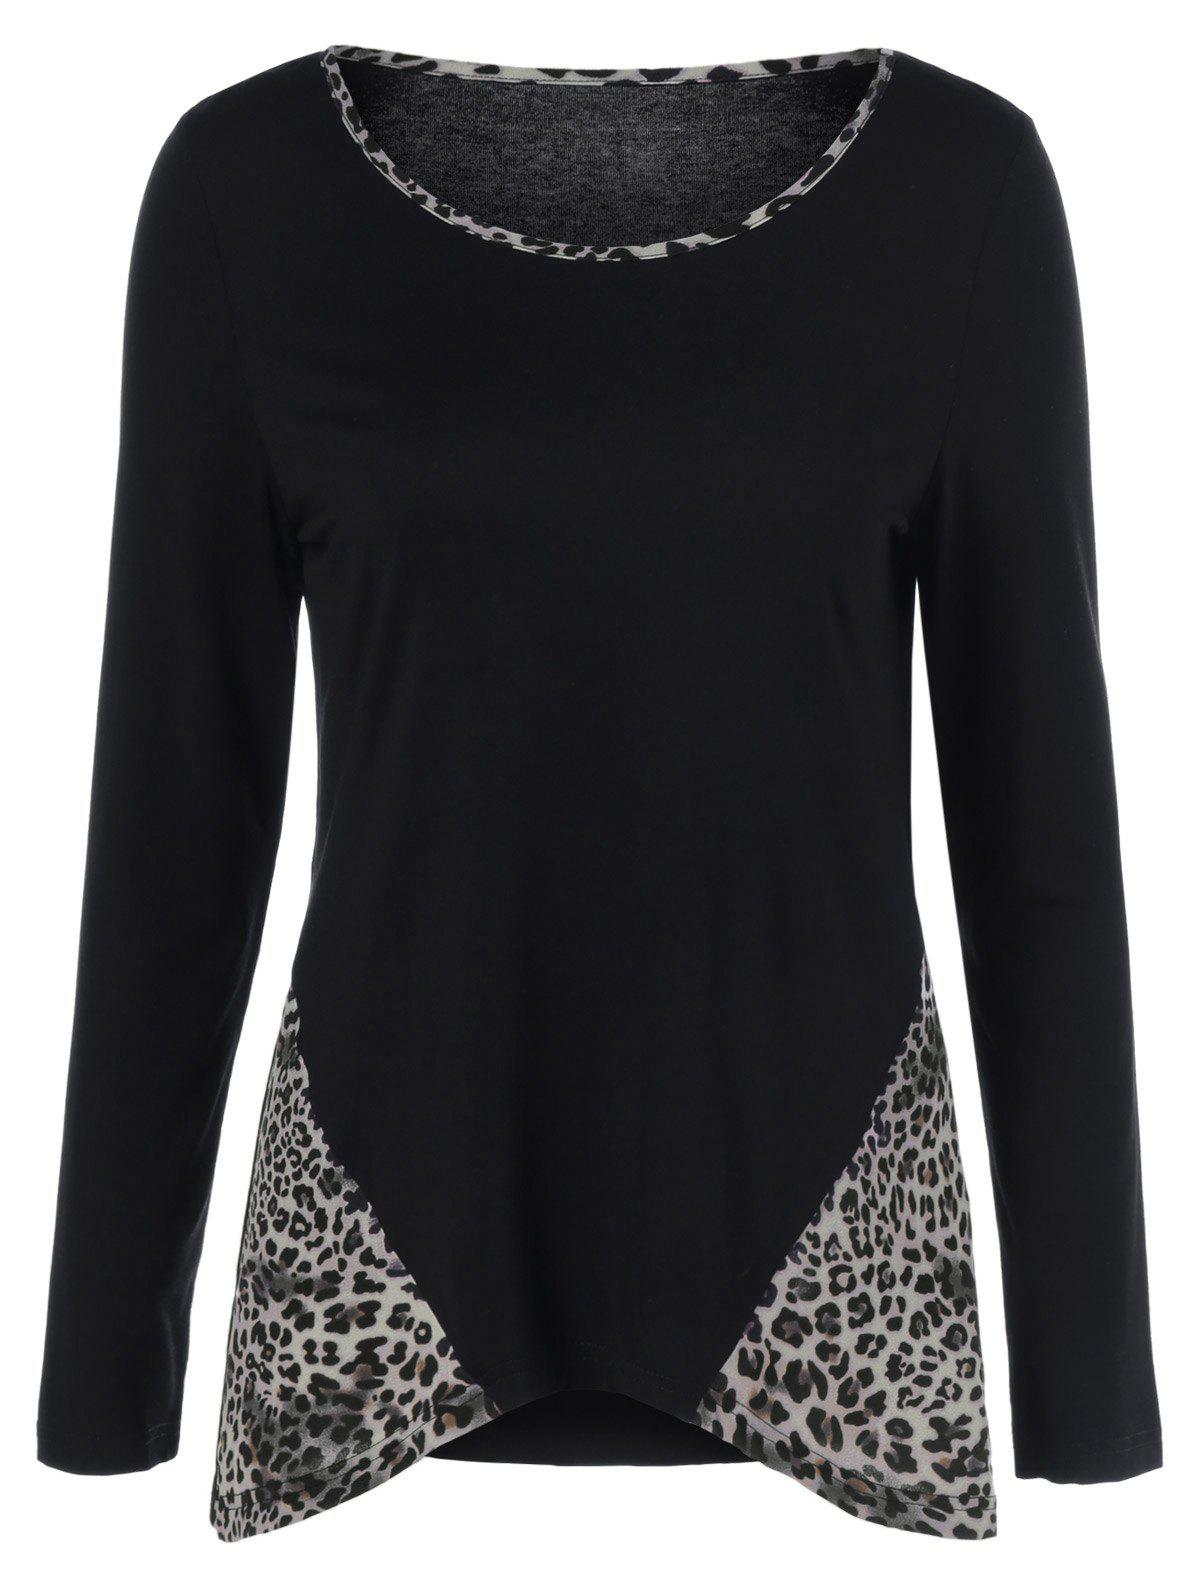 Leopard Trim Asymmetrical T-Shirt - BLACK XL